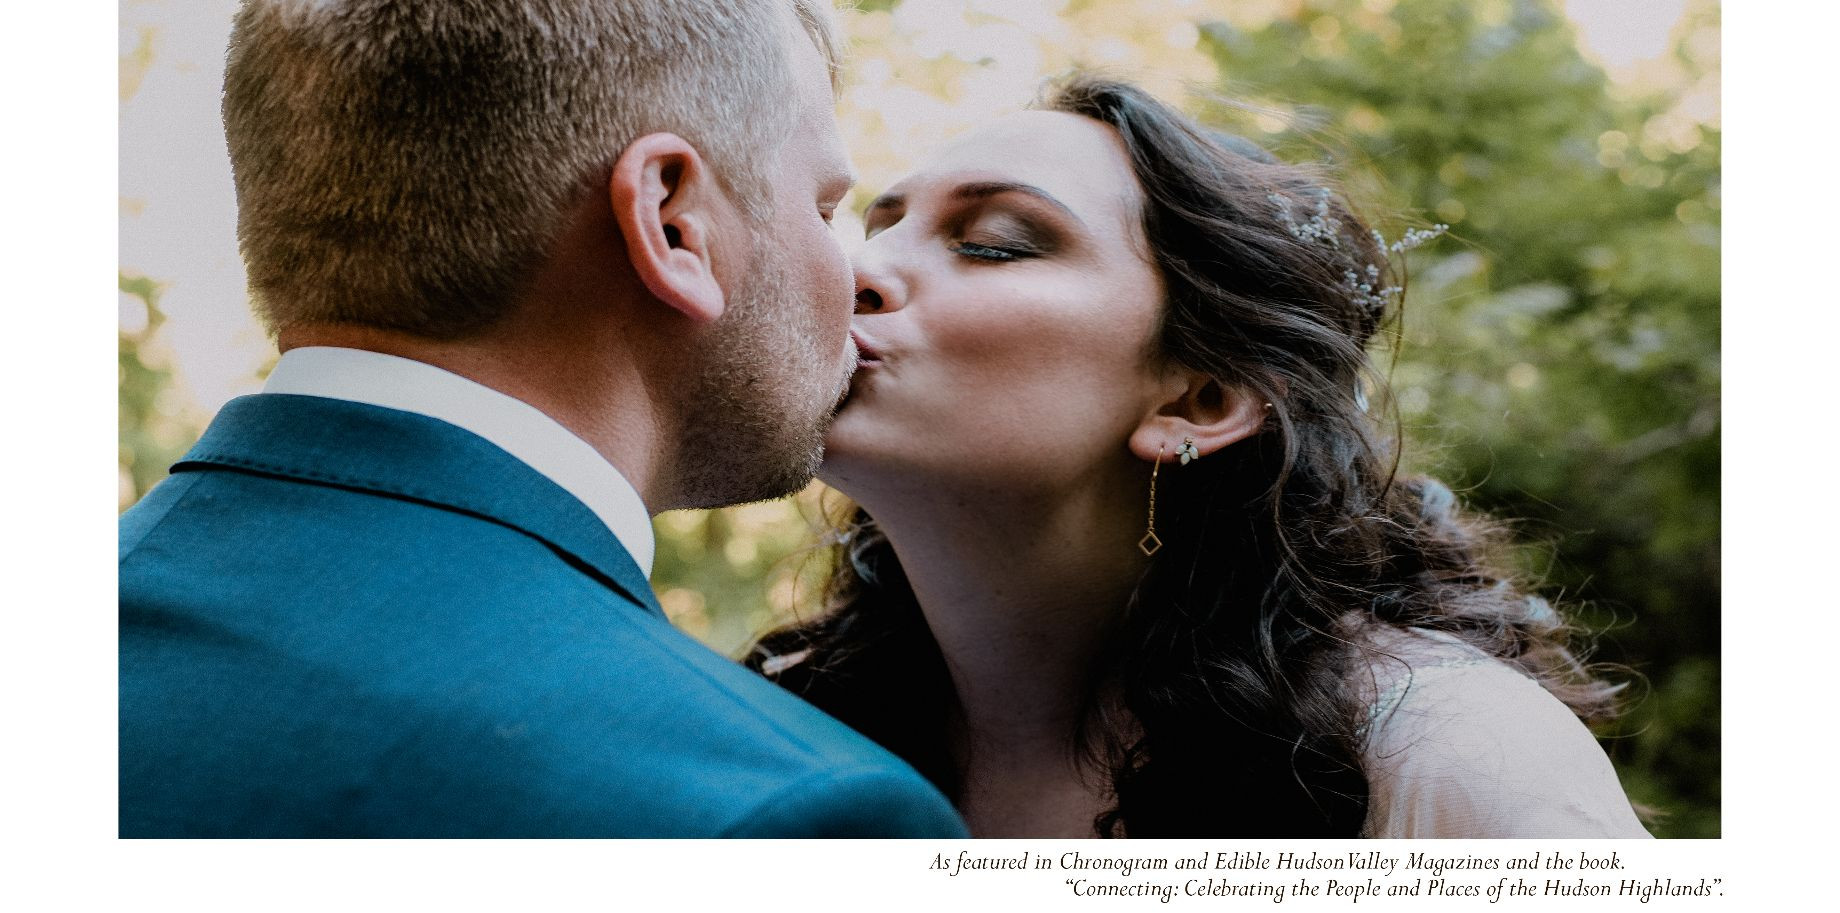 Updating my wedding photography website